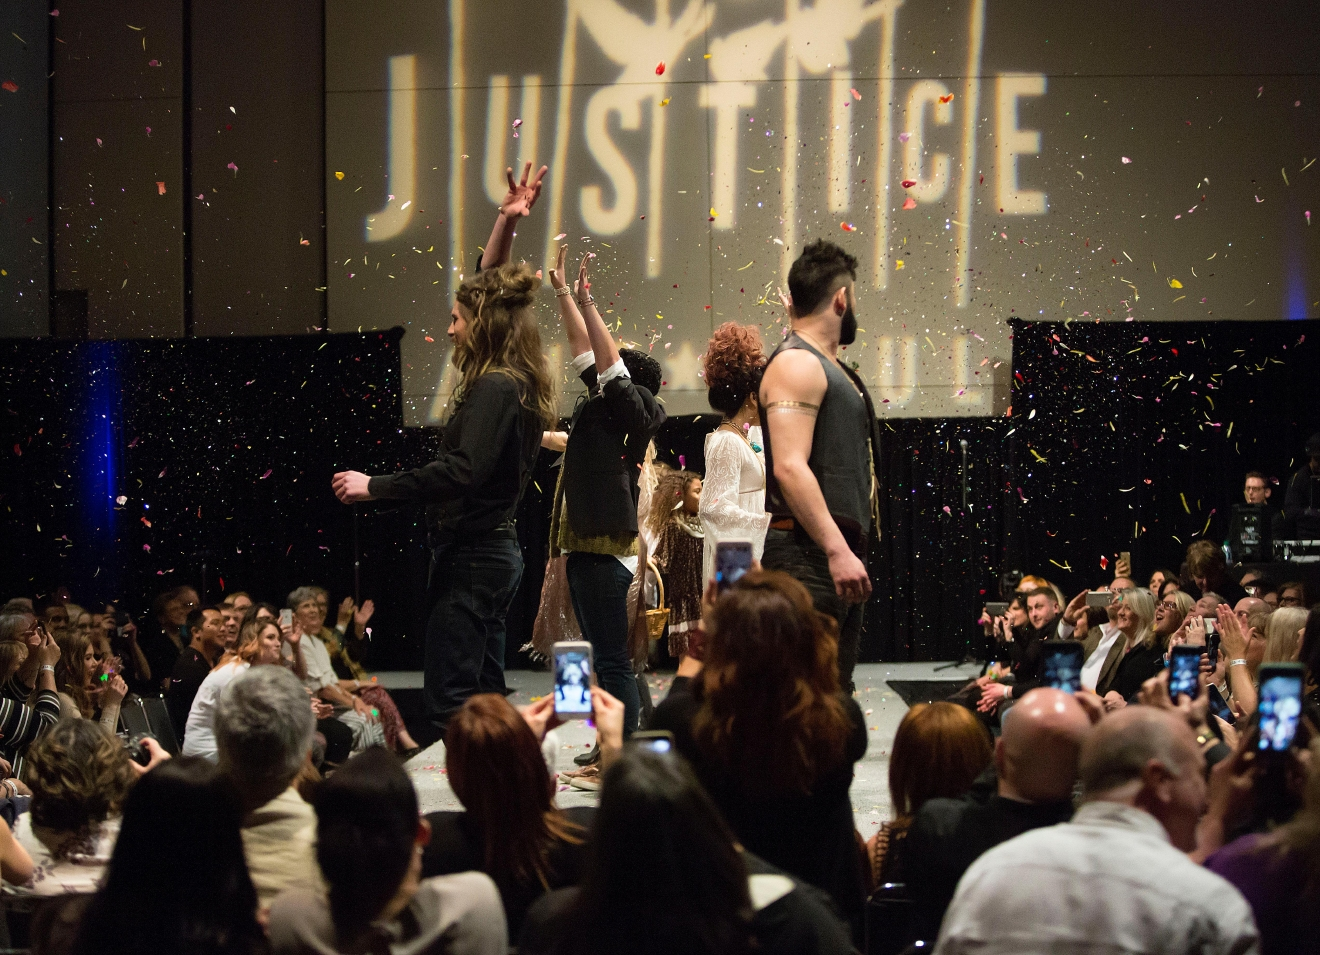 The fourth annual Fashion SOULstice grossed over $150,000 on Saturday night (March 25, 2017). All proceeds will go to the Justice and Soul Foundation, a program aimed to help victims of human trafficking both here in then Pacific Northwest and in Cambodia, specifically. This year the foundation is hoping to start a local program, and expand their current Cambodian salon to include a barbering aspect as well. This is the non-profit's top fundraiser of the year, and features a fashion show and auction. (Sy Bean / Seattle Refined)